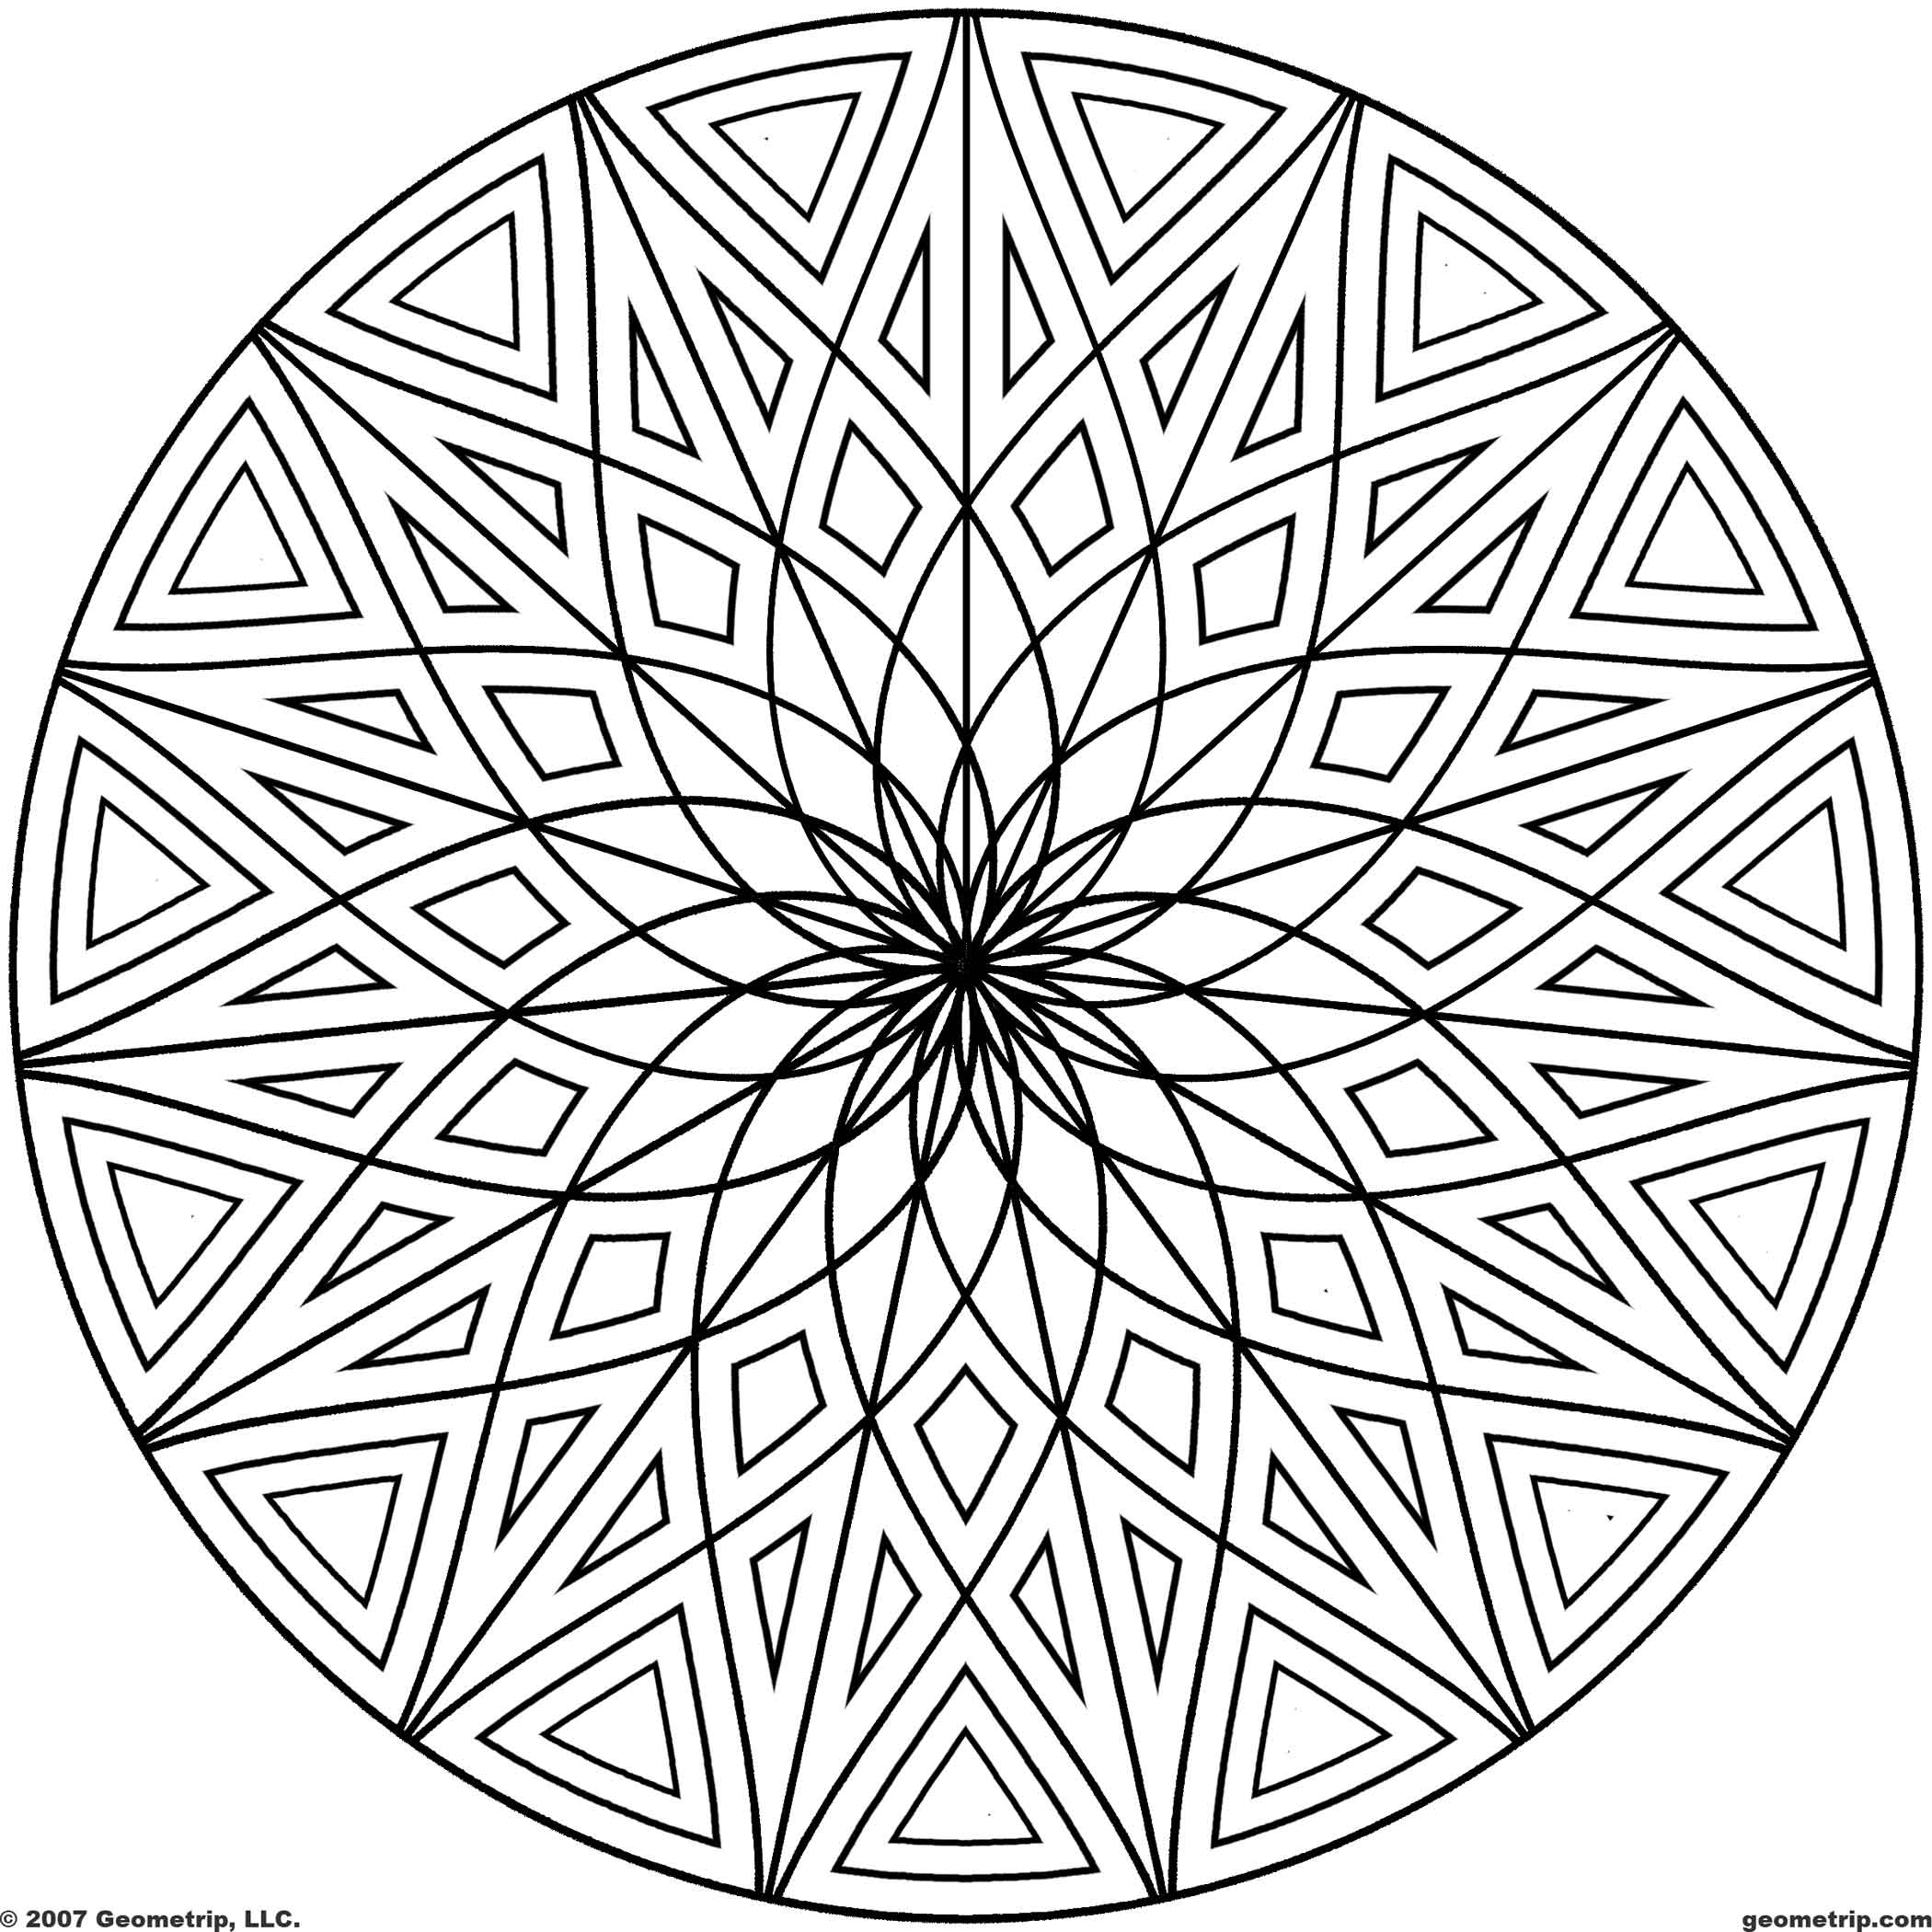 16 Cool Designs Patterns To Color Images